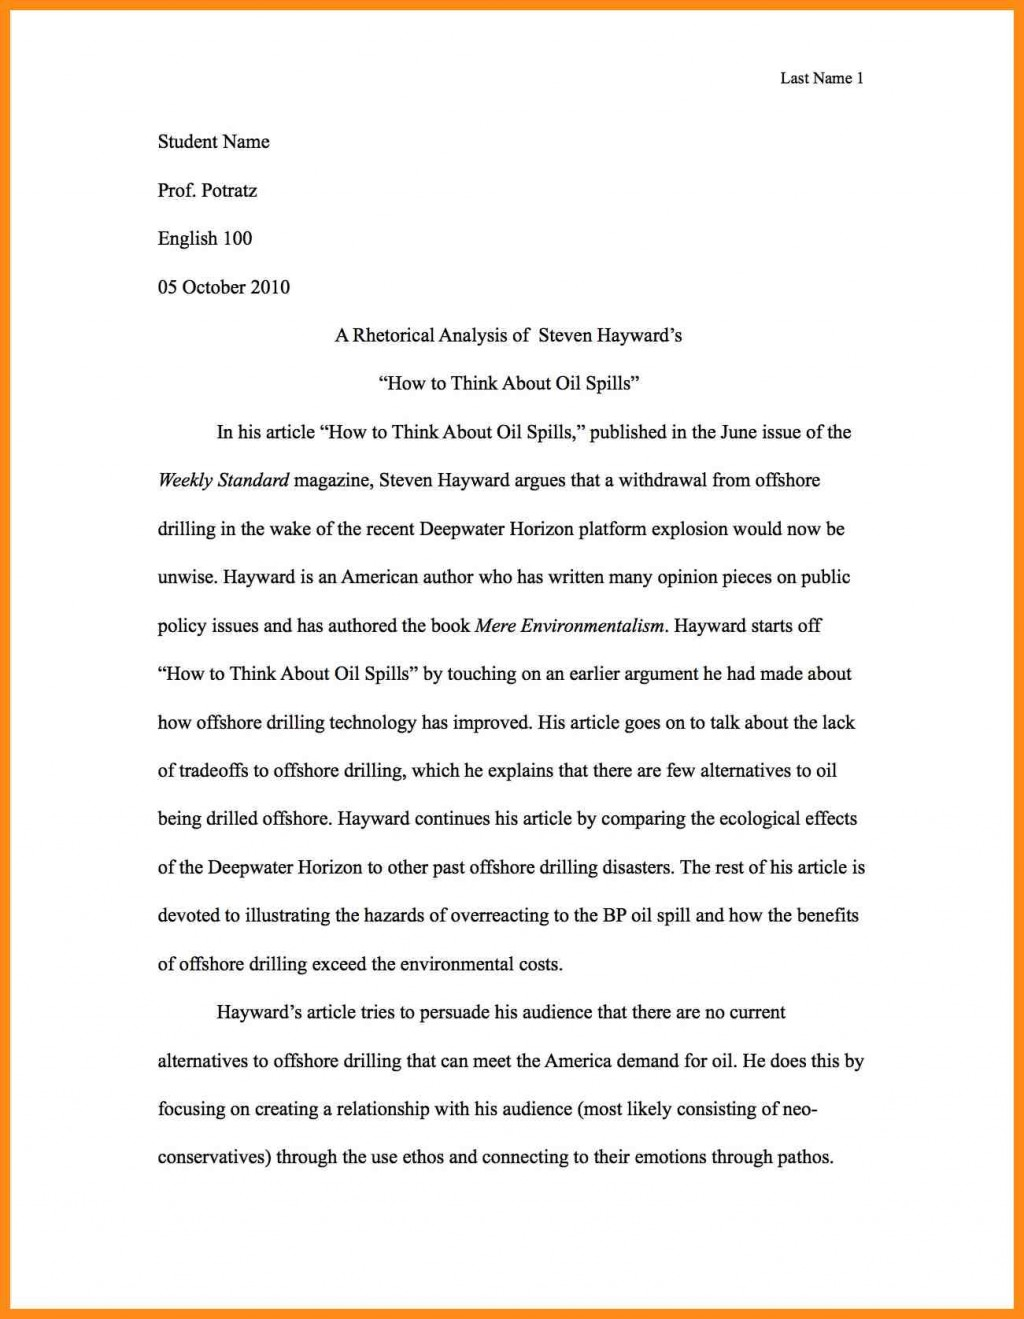 003 How To Write Rhetorical Essay Beautiful A Situation Analysis On An Advertisement Large